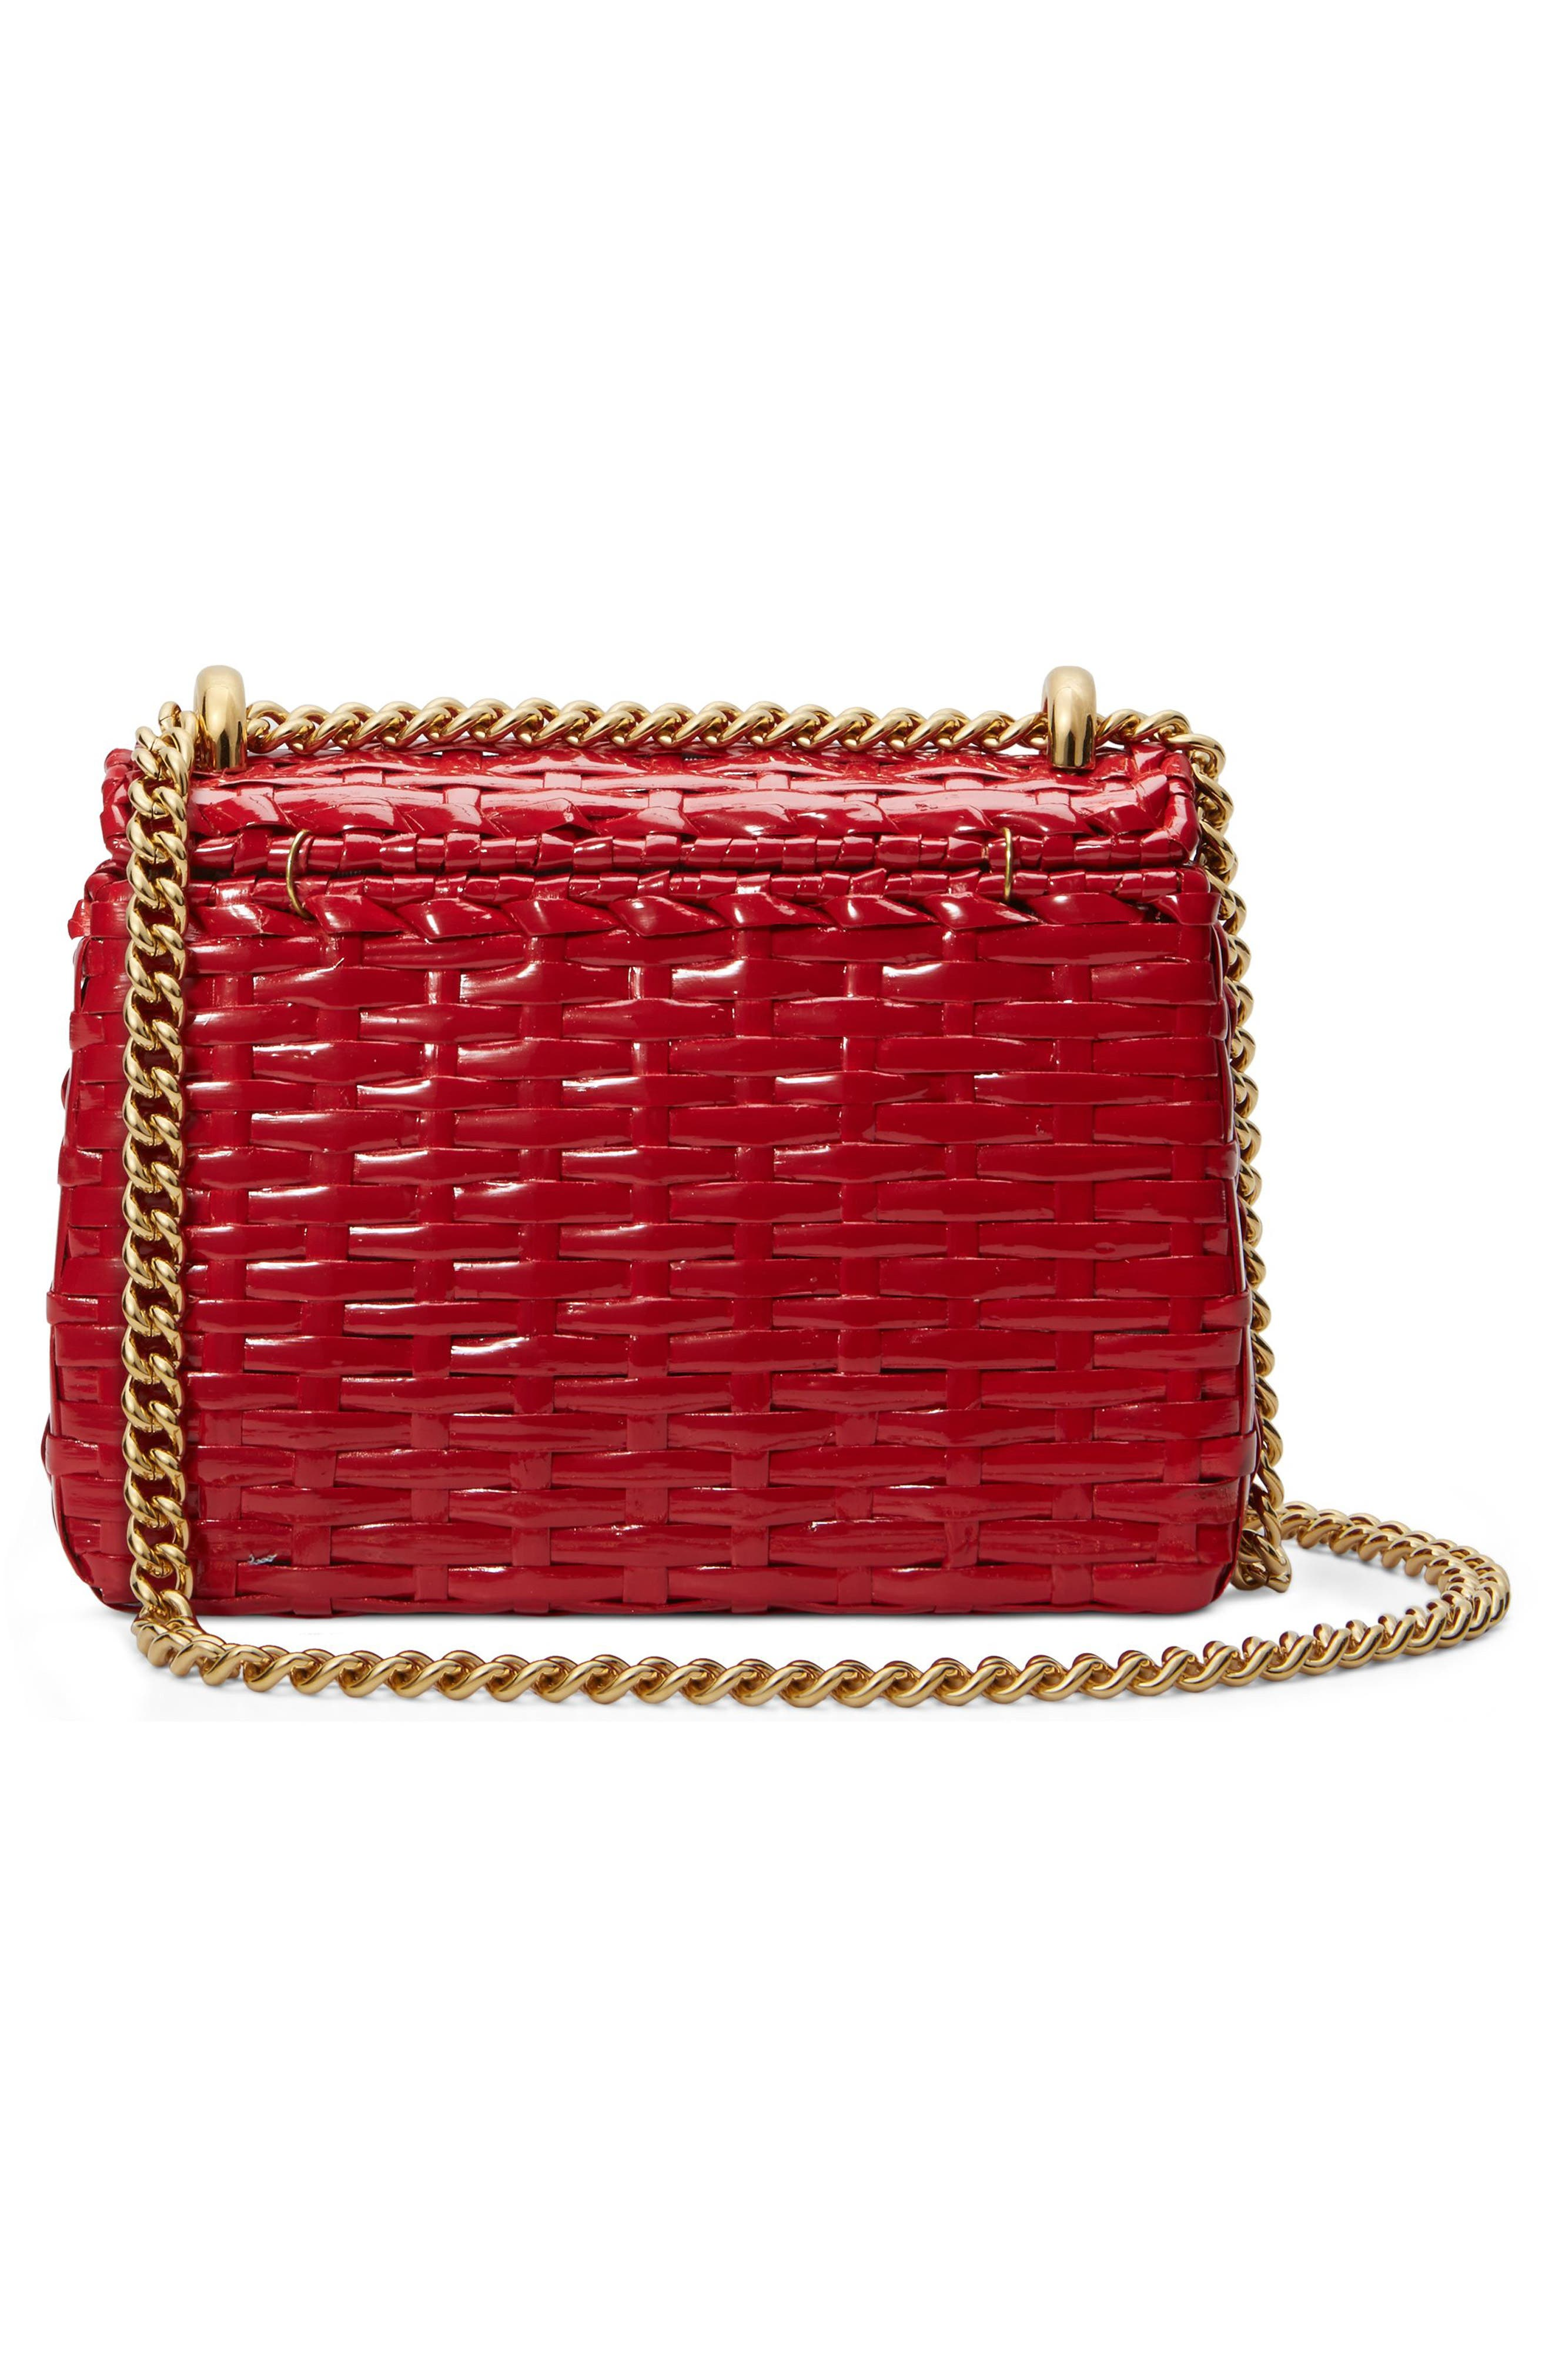 Small Linea Cestino Glazed Wicker Shoulder Bag,                             Alternate thumbnail 2, color,                             ROSSO